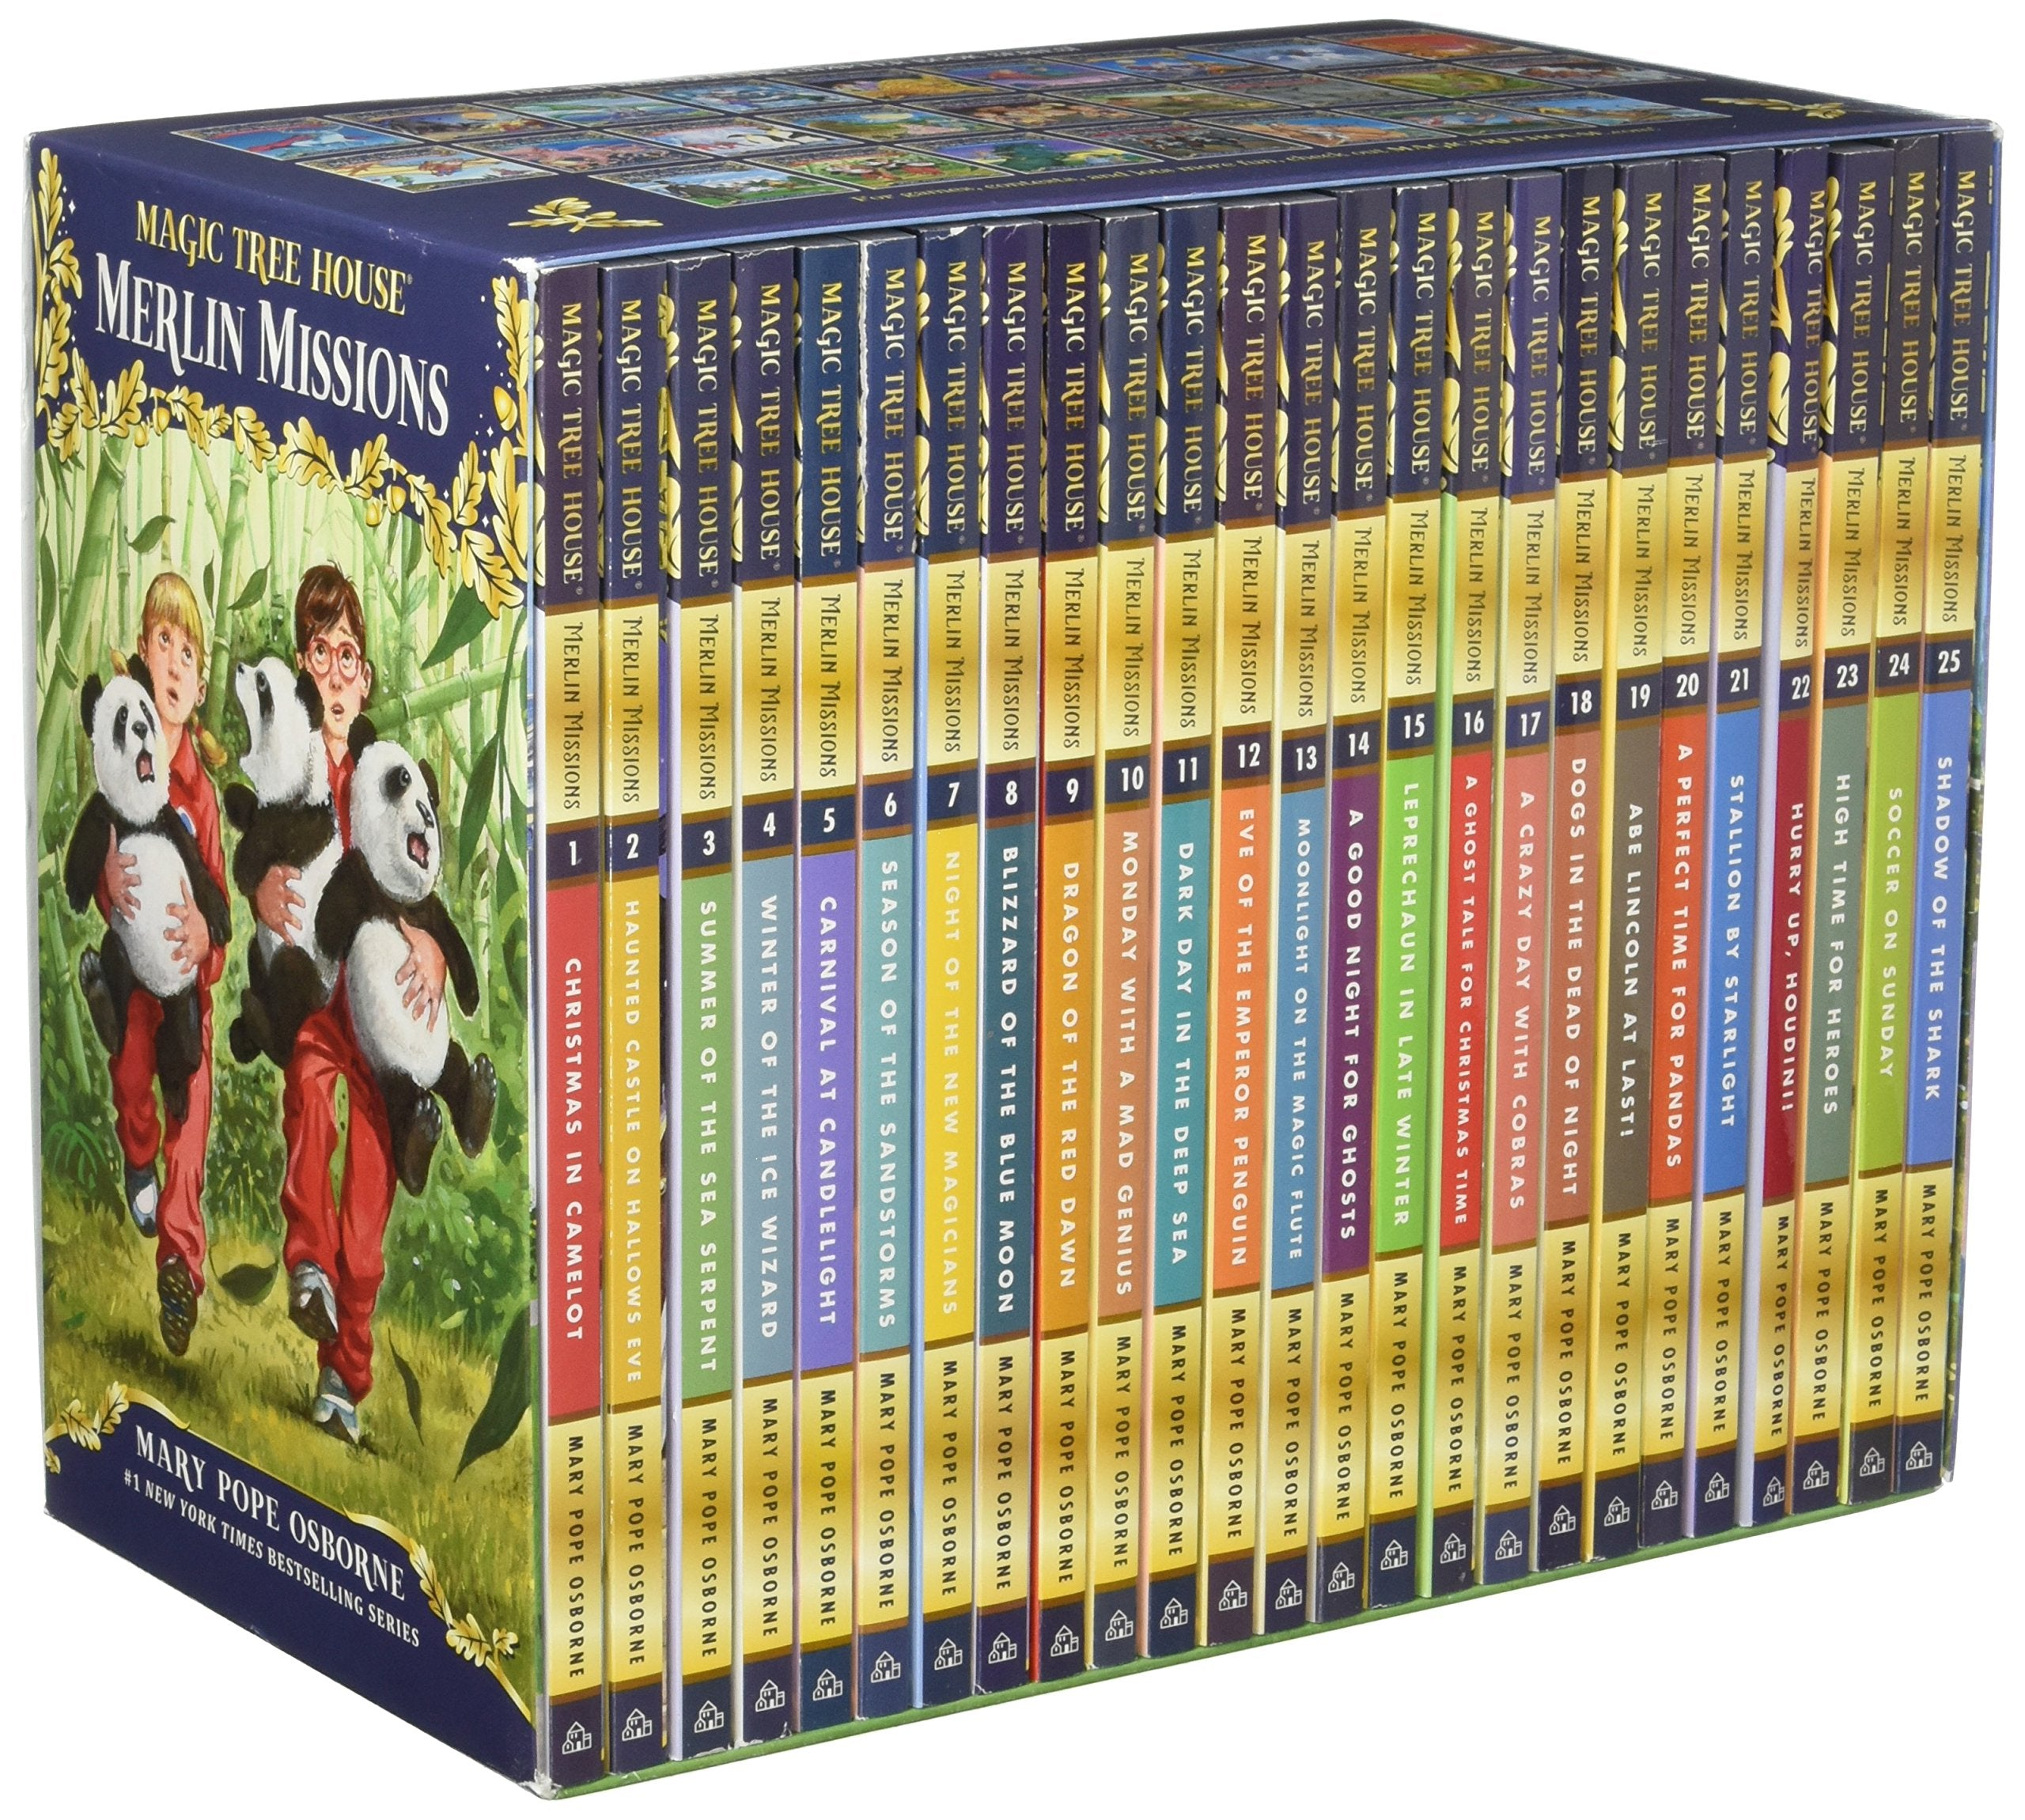 Magic Tree House Merlin Missions A Library Of Books 1-27 Boxed Set